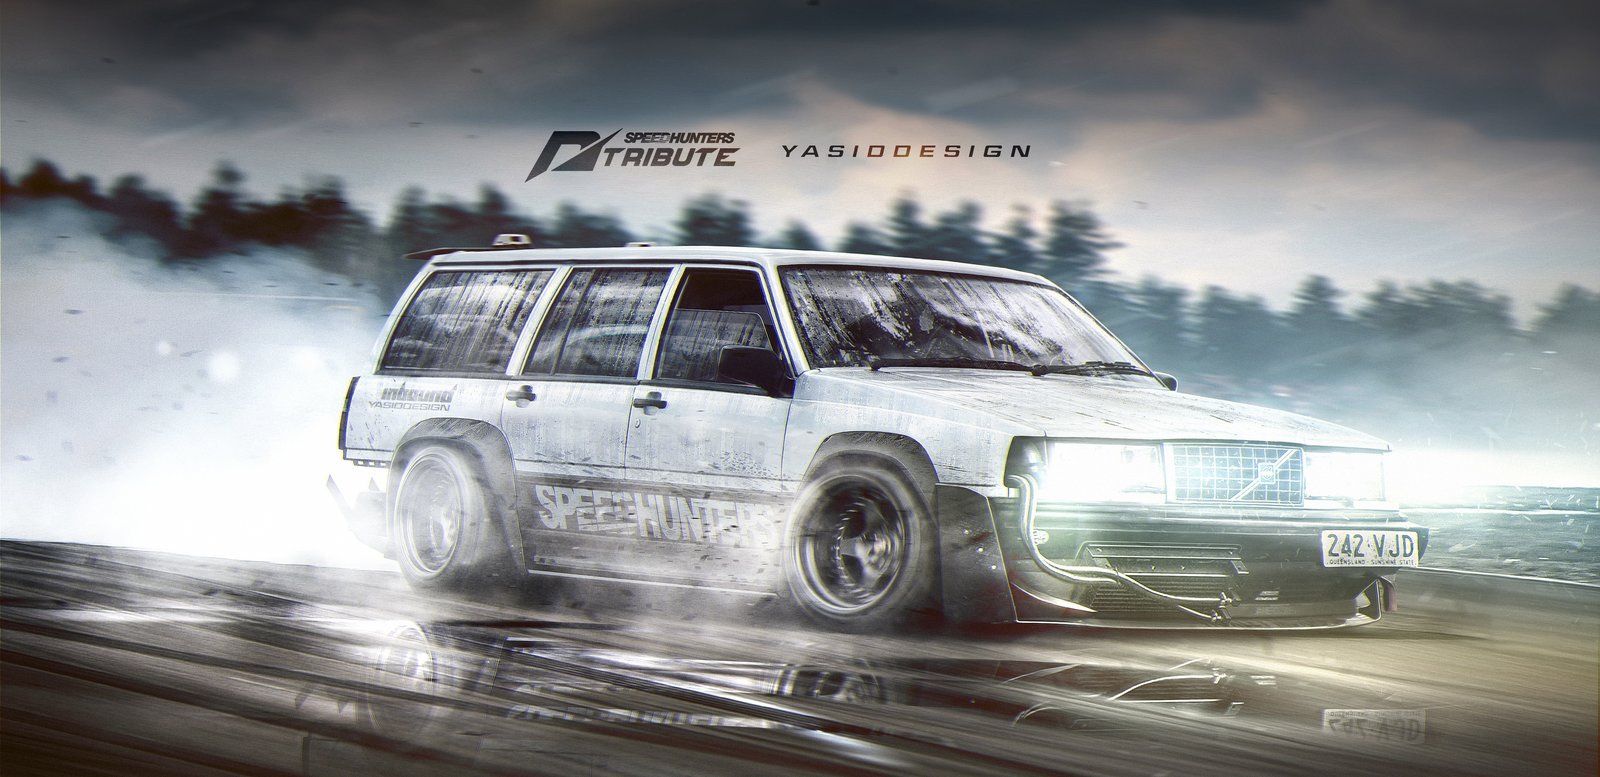 Speedhunters Volvo 940 - Need for speed tribute 2 Drift missile